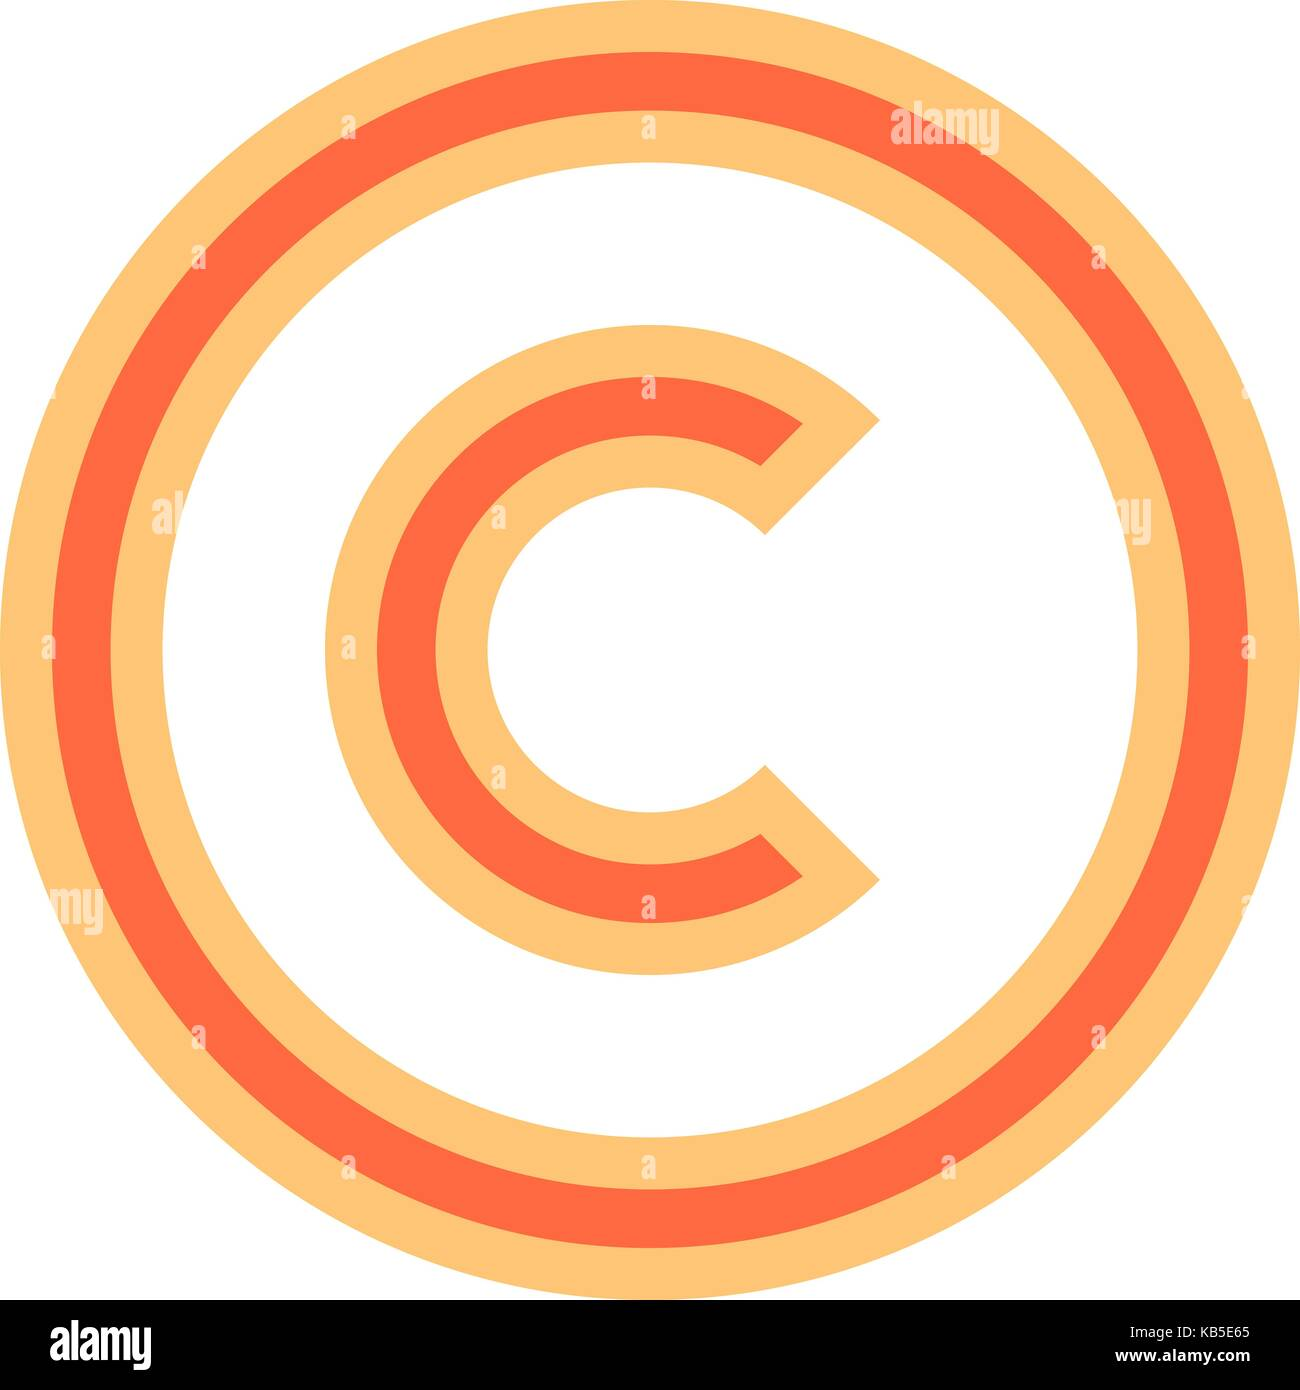 Copyright sign stock photos copyright sign stock images alamy the copyright symbol or copyright sign a circled capital letter c flat style biocorpaavc Gallery